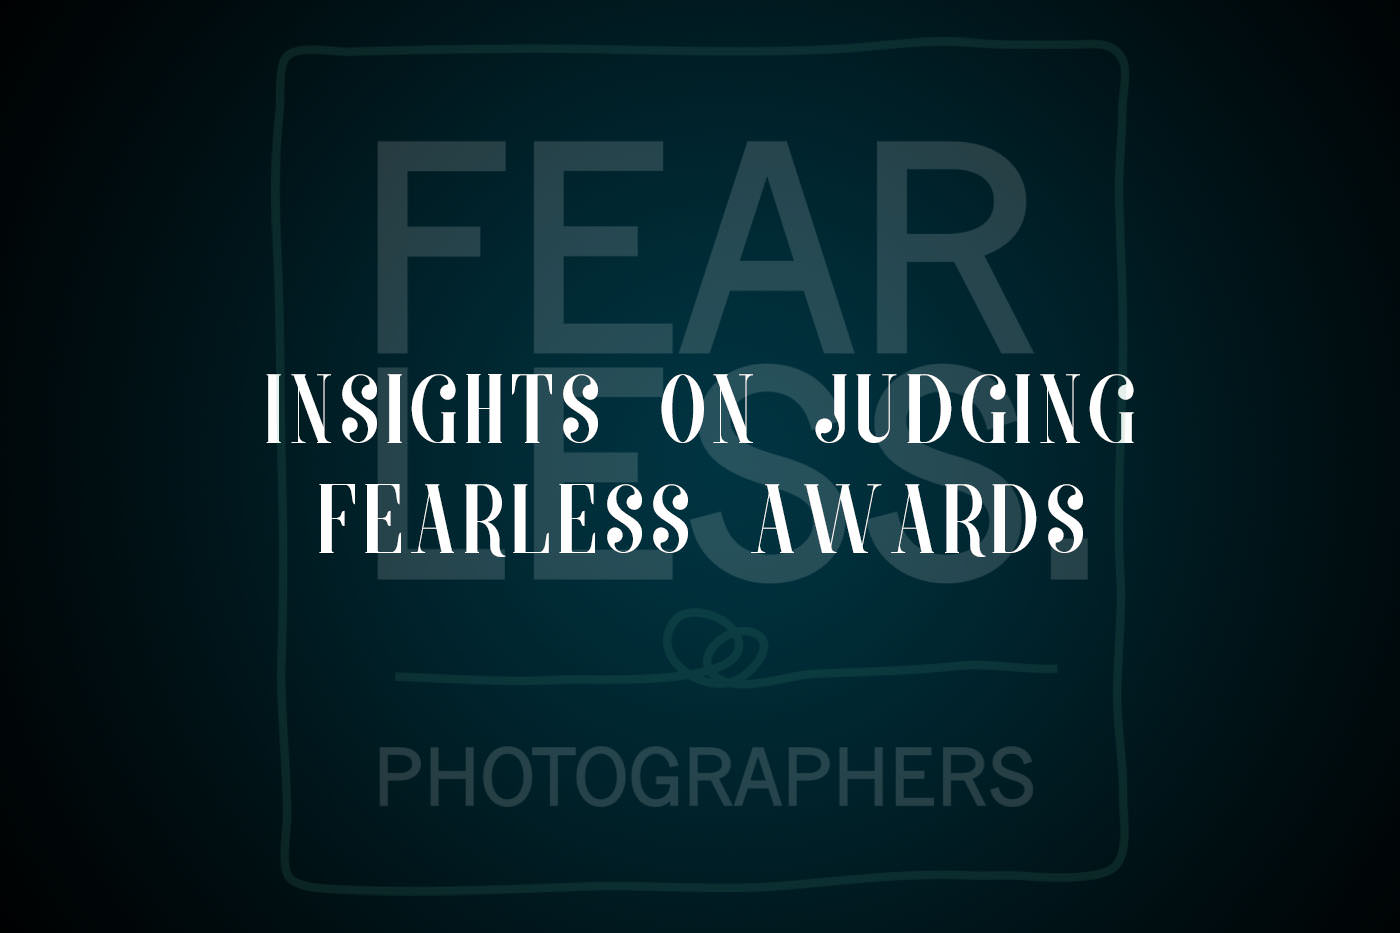 judging fearless awards